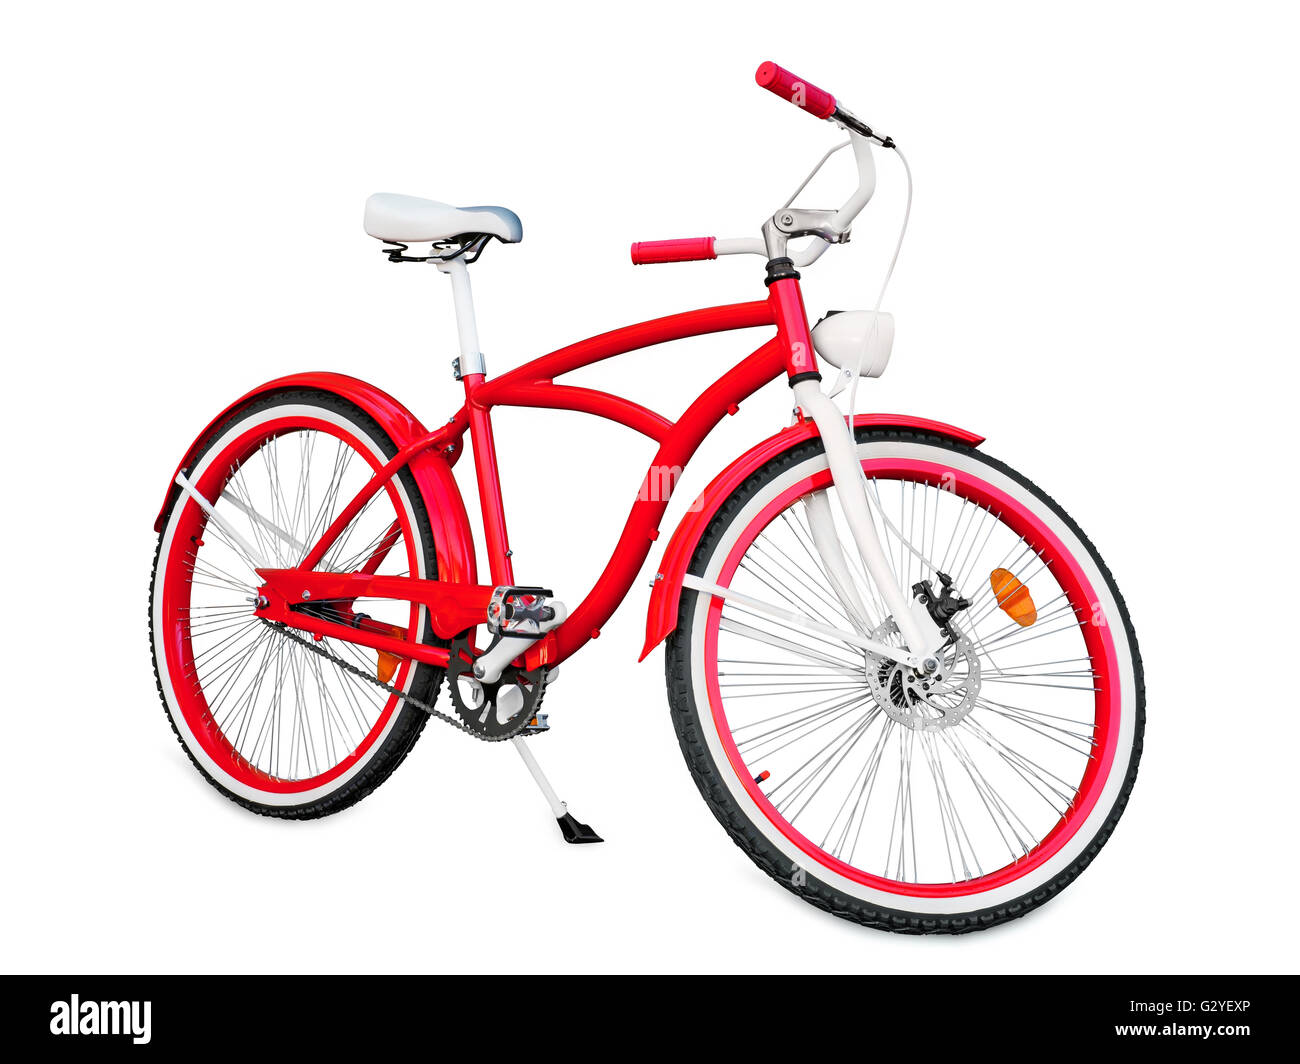 Red bike isolated on white with clipping path - Stock Image